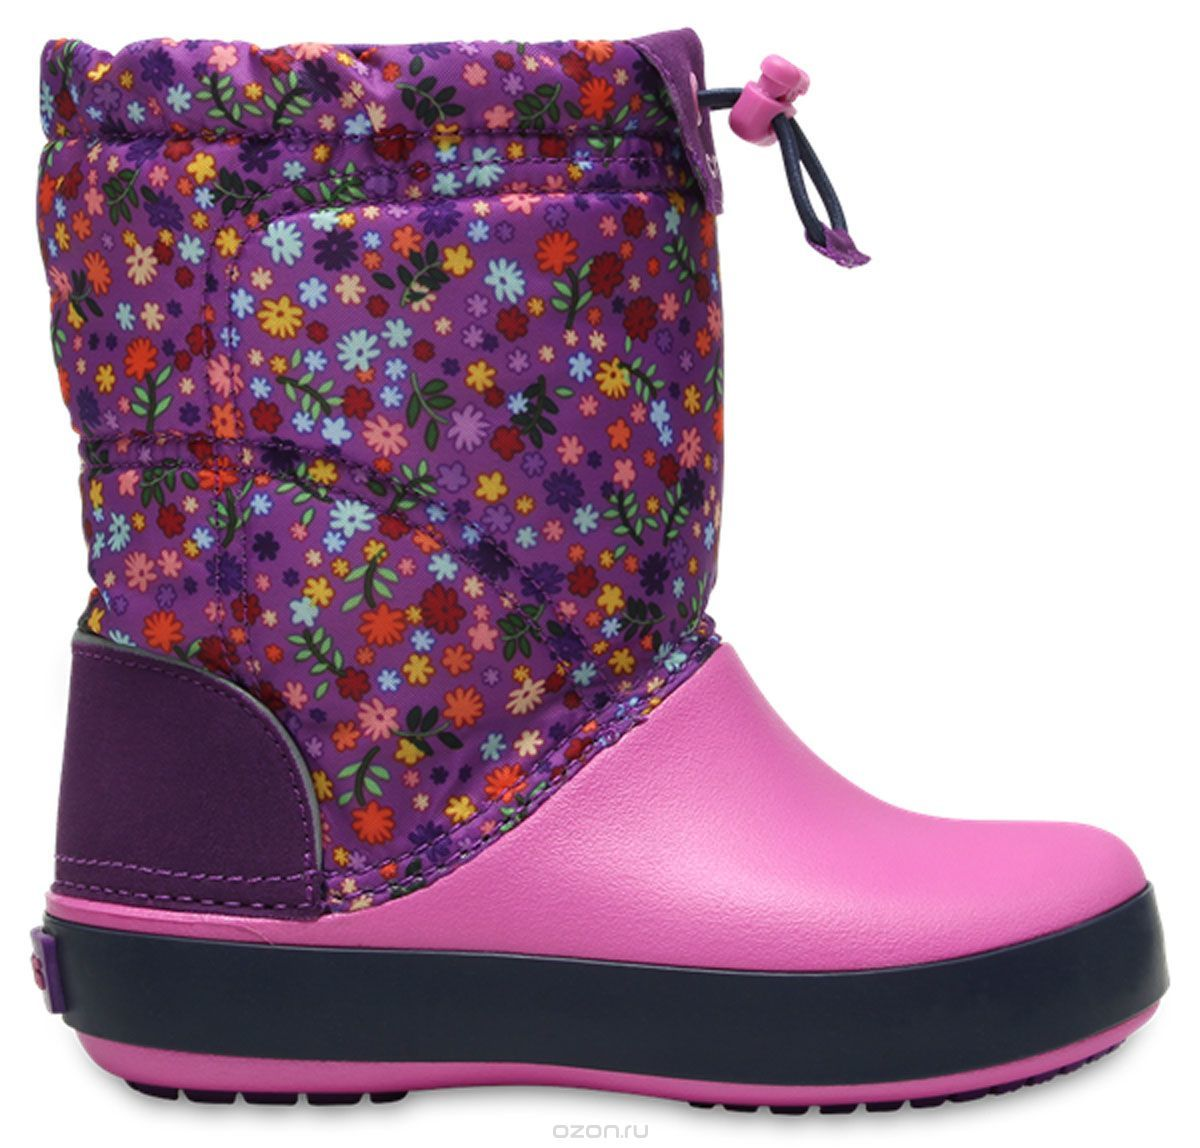 Сапоги детские Crocs Crocband LodgePoint Graphic KIDS Amethyst/Party Pink